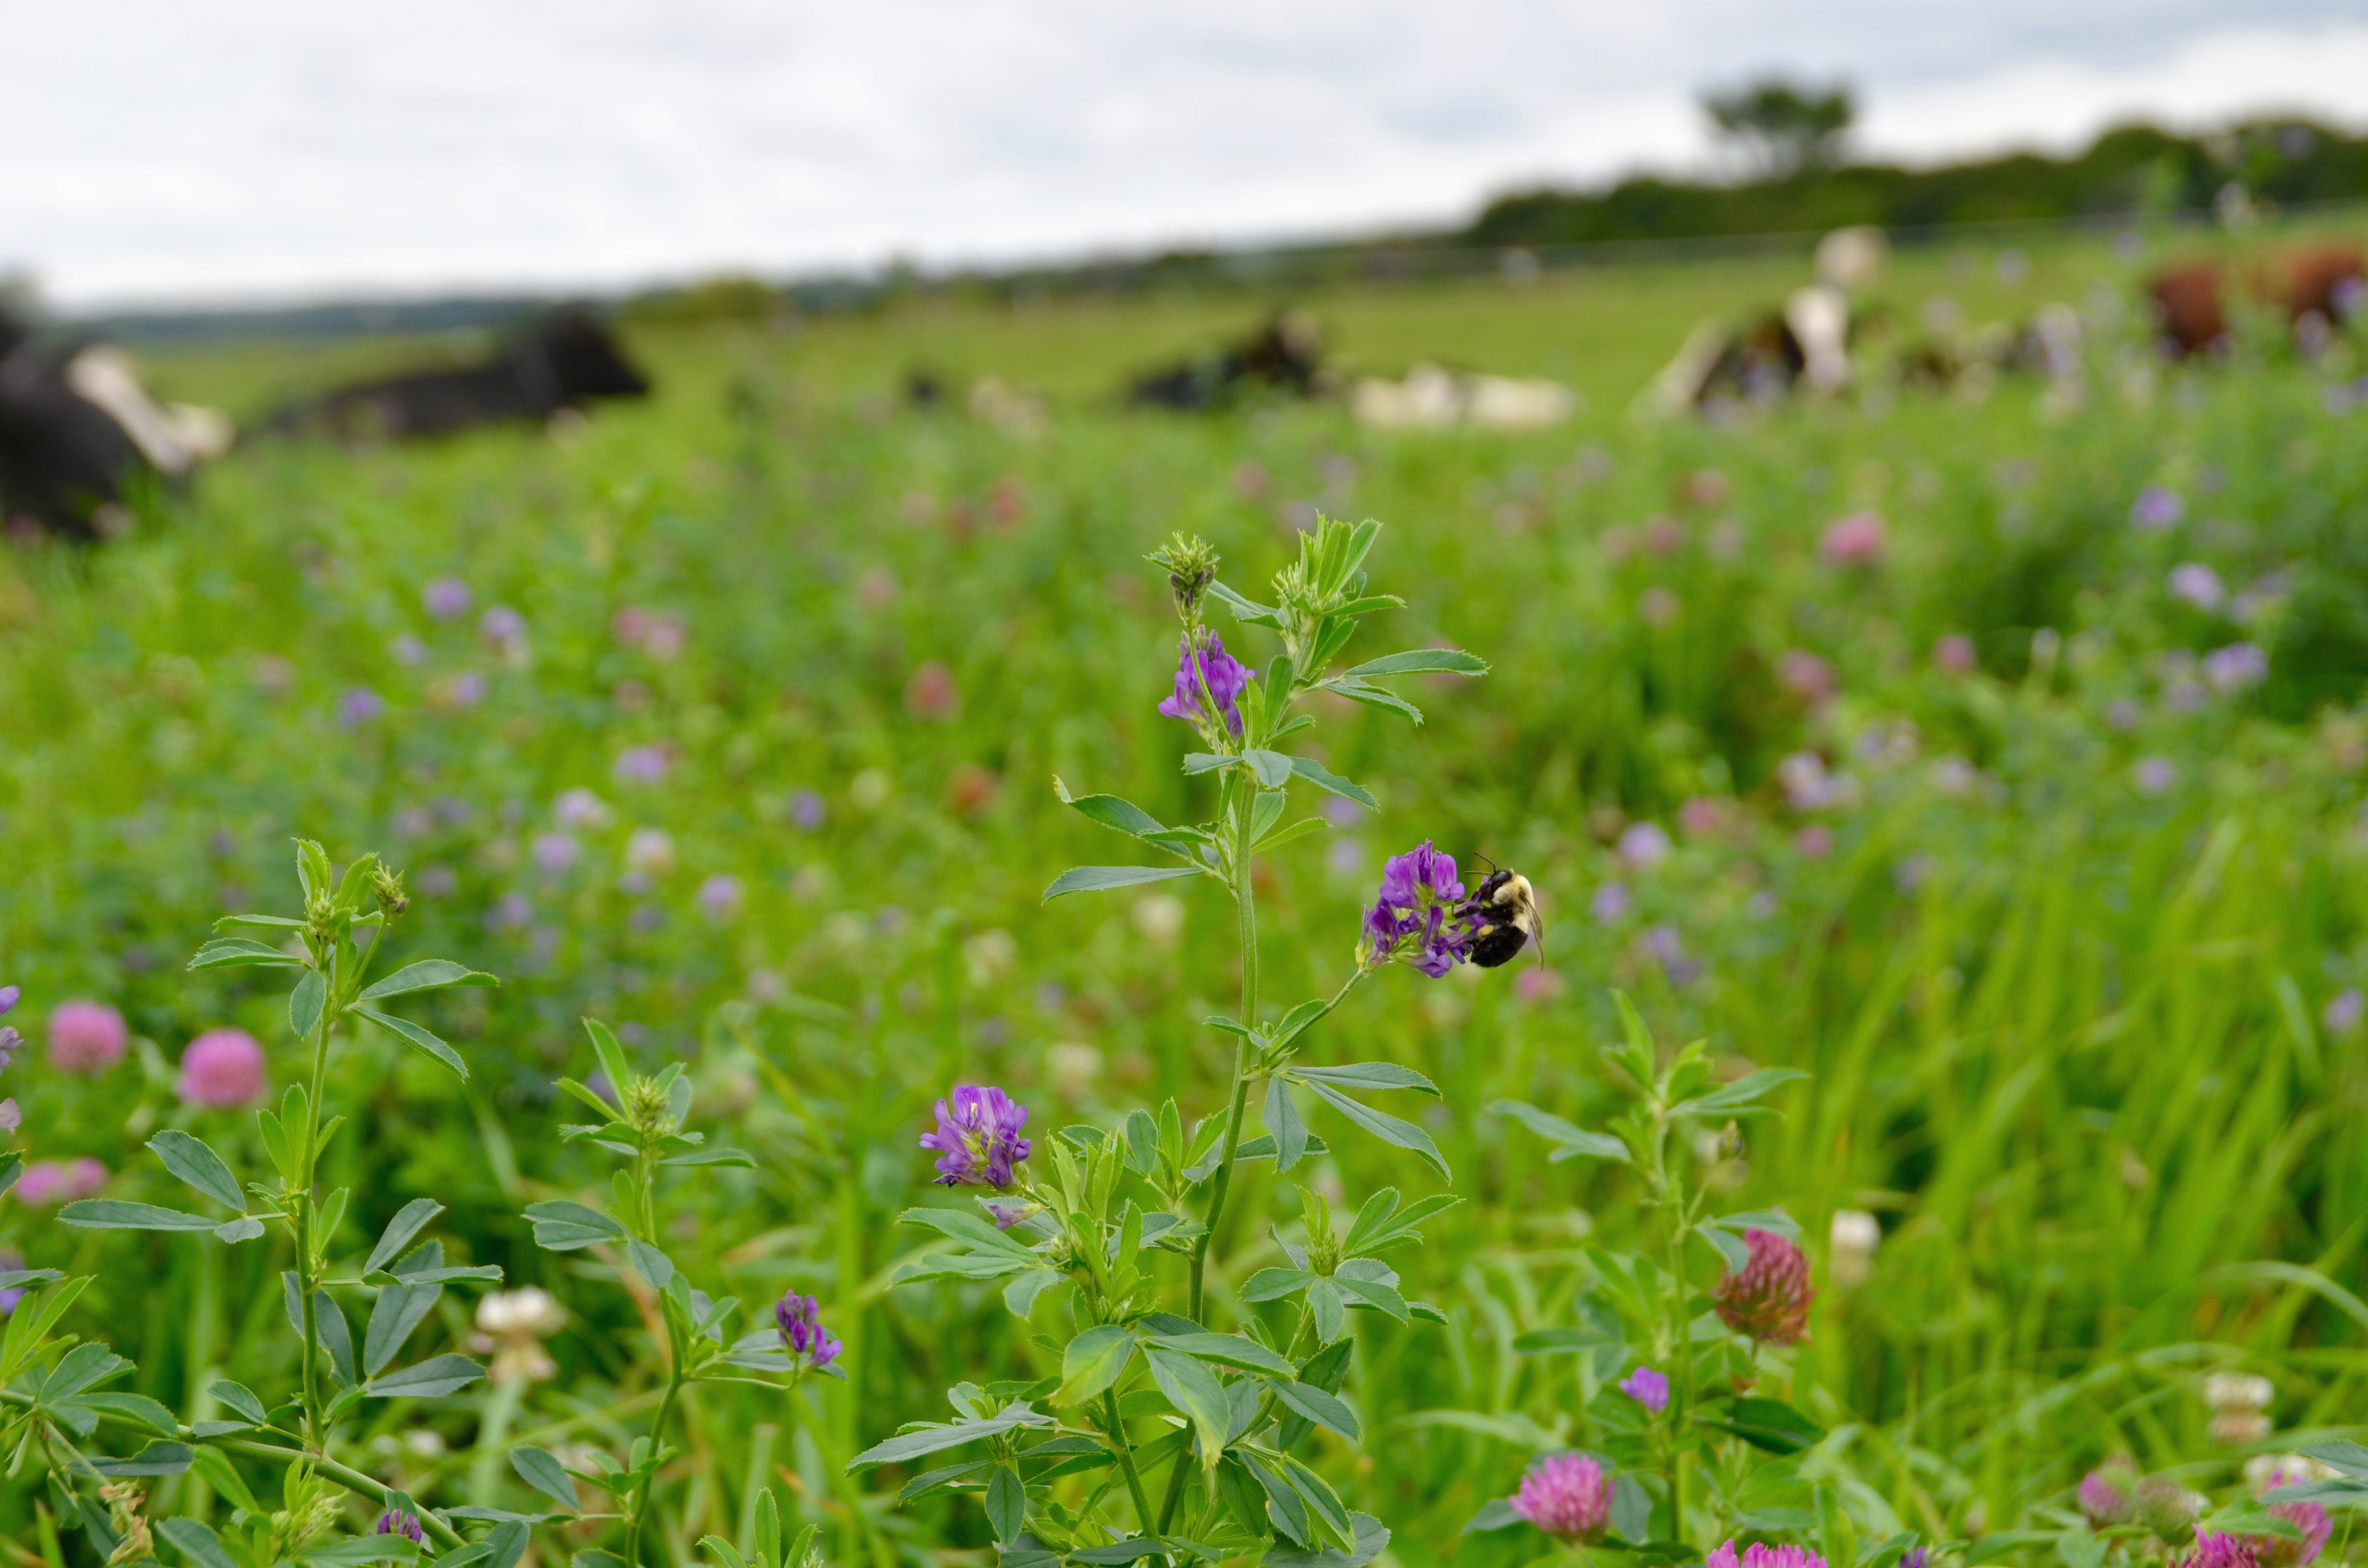 A dark-colored bumble bee holds tightly to a purple flower in a field. There are blurred-out cows in the background of this image, which has a shallow depth-of-field.